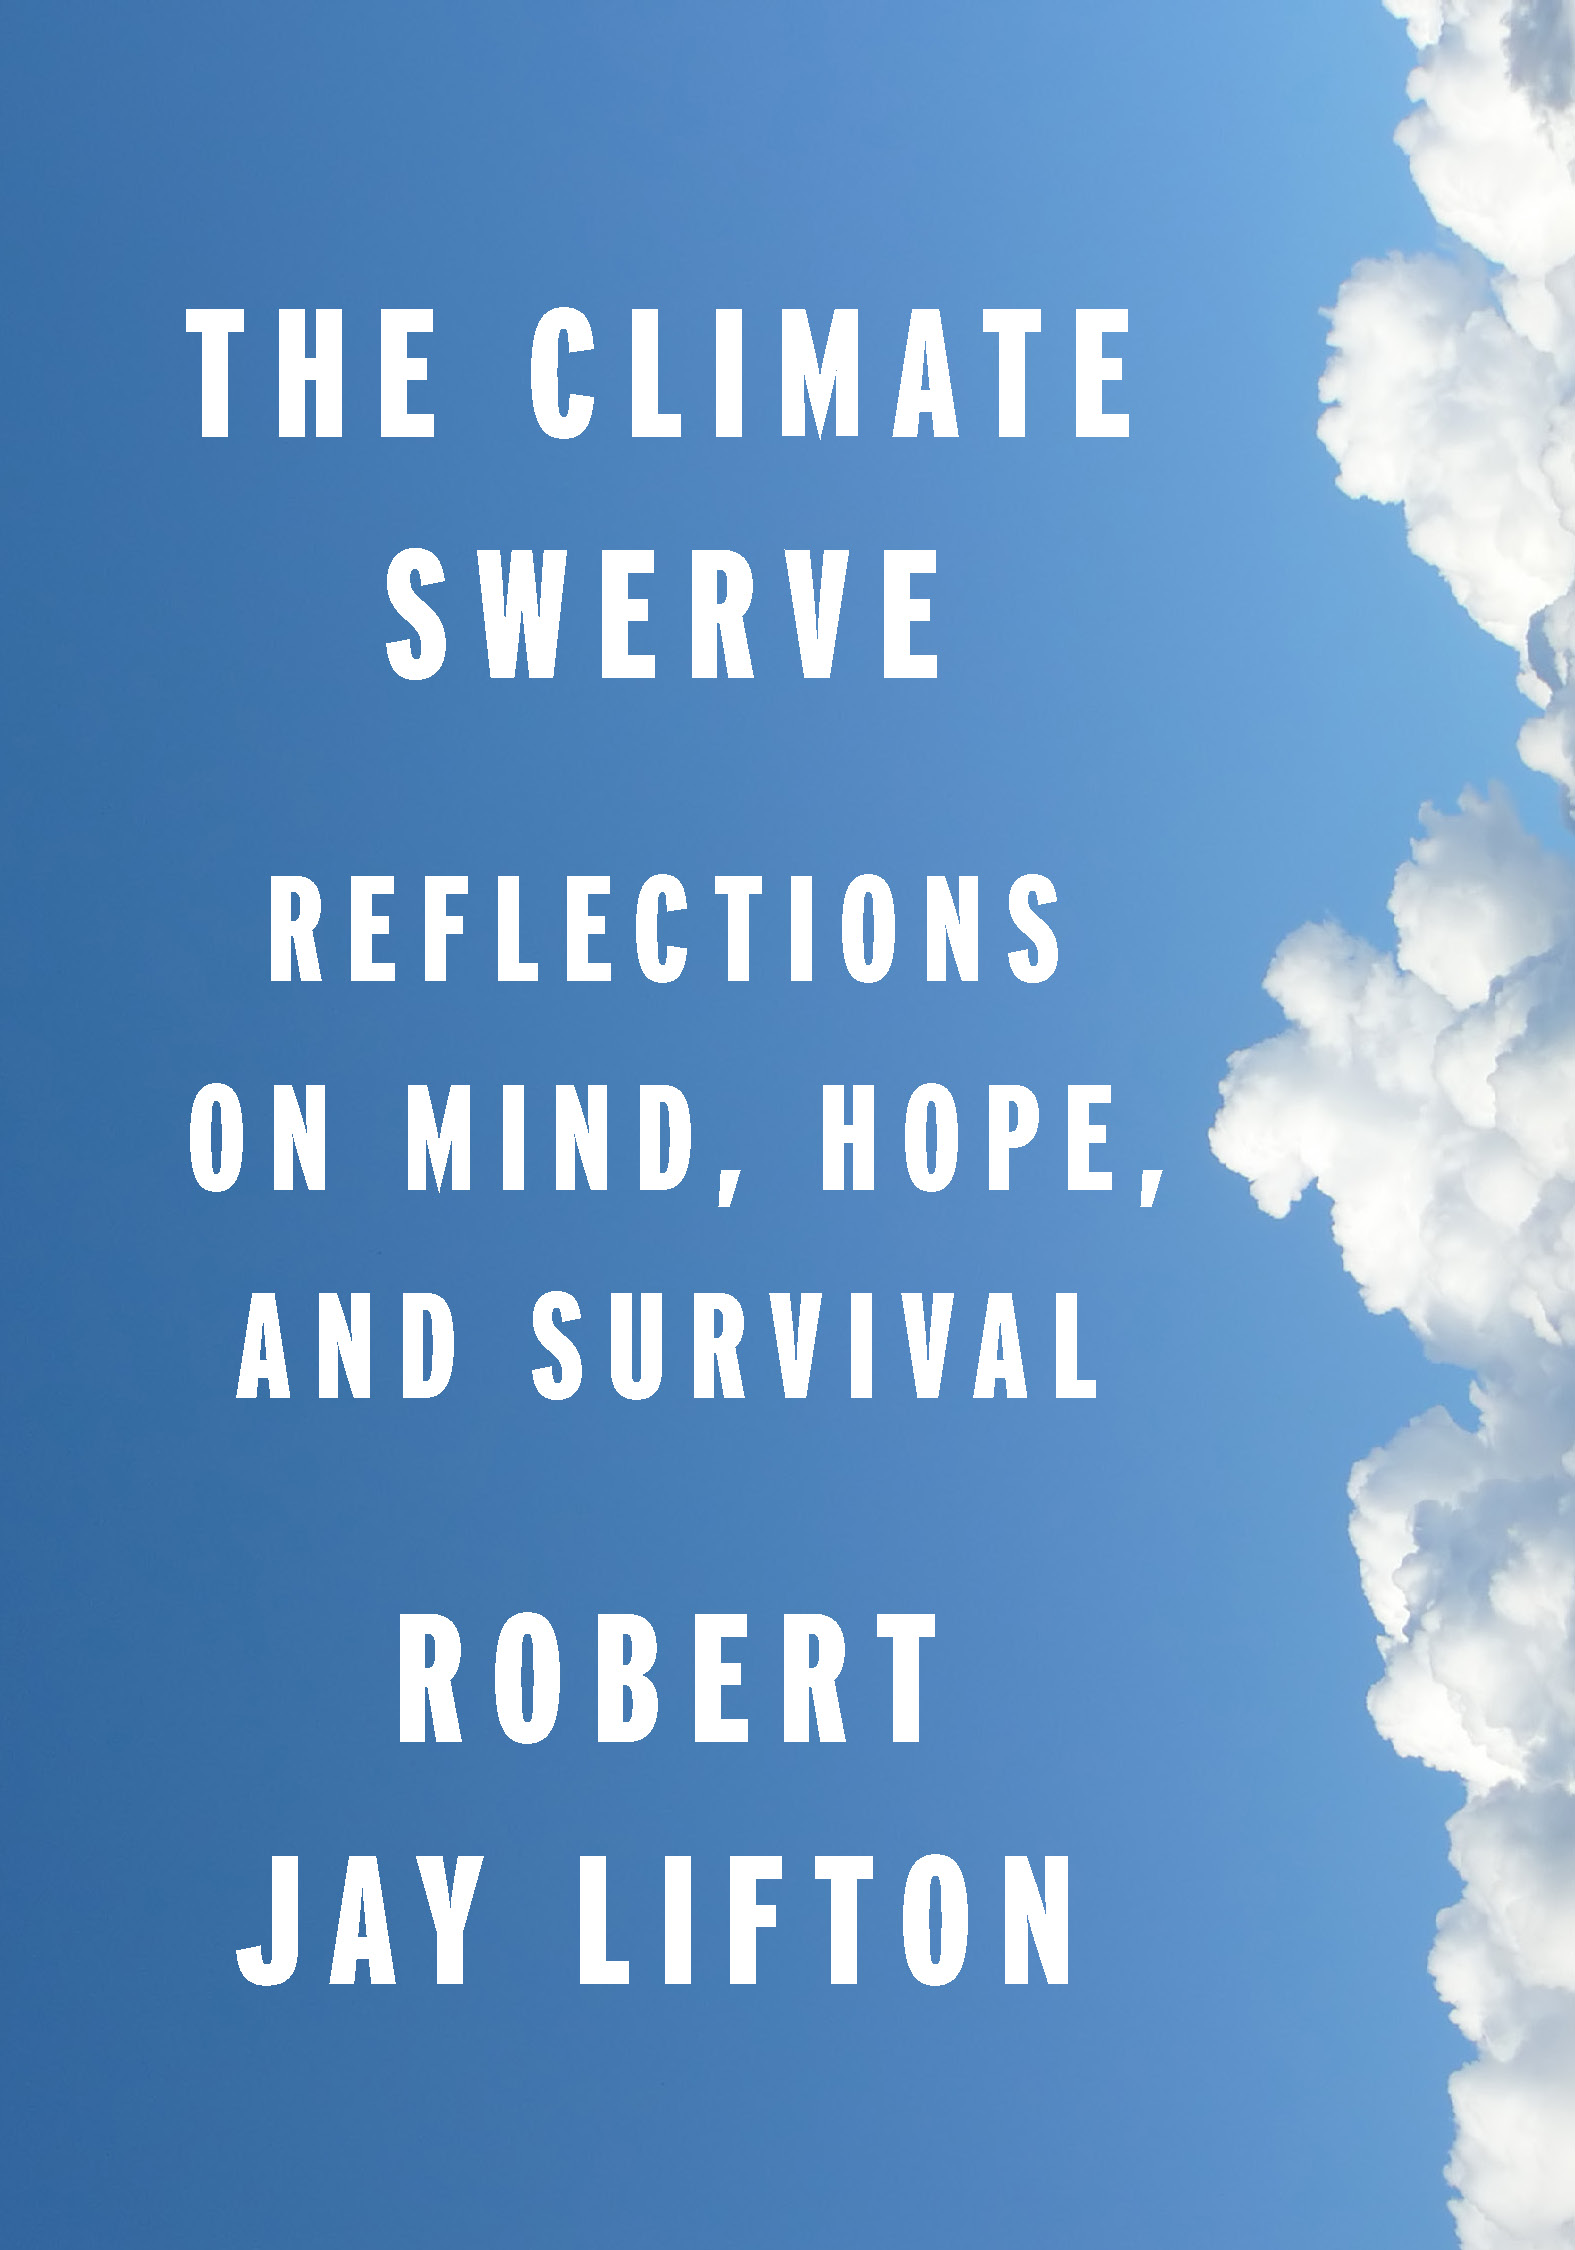 The Climate Swerve: Reflections on Mind, Hope, and Survival , Robert Jay Lifton. The New Press, September 2017. 192 pp.